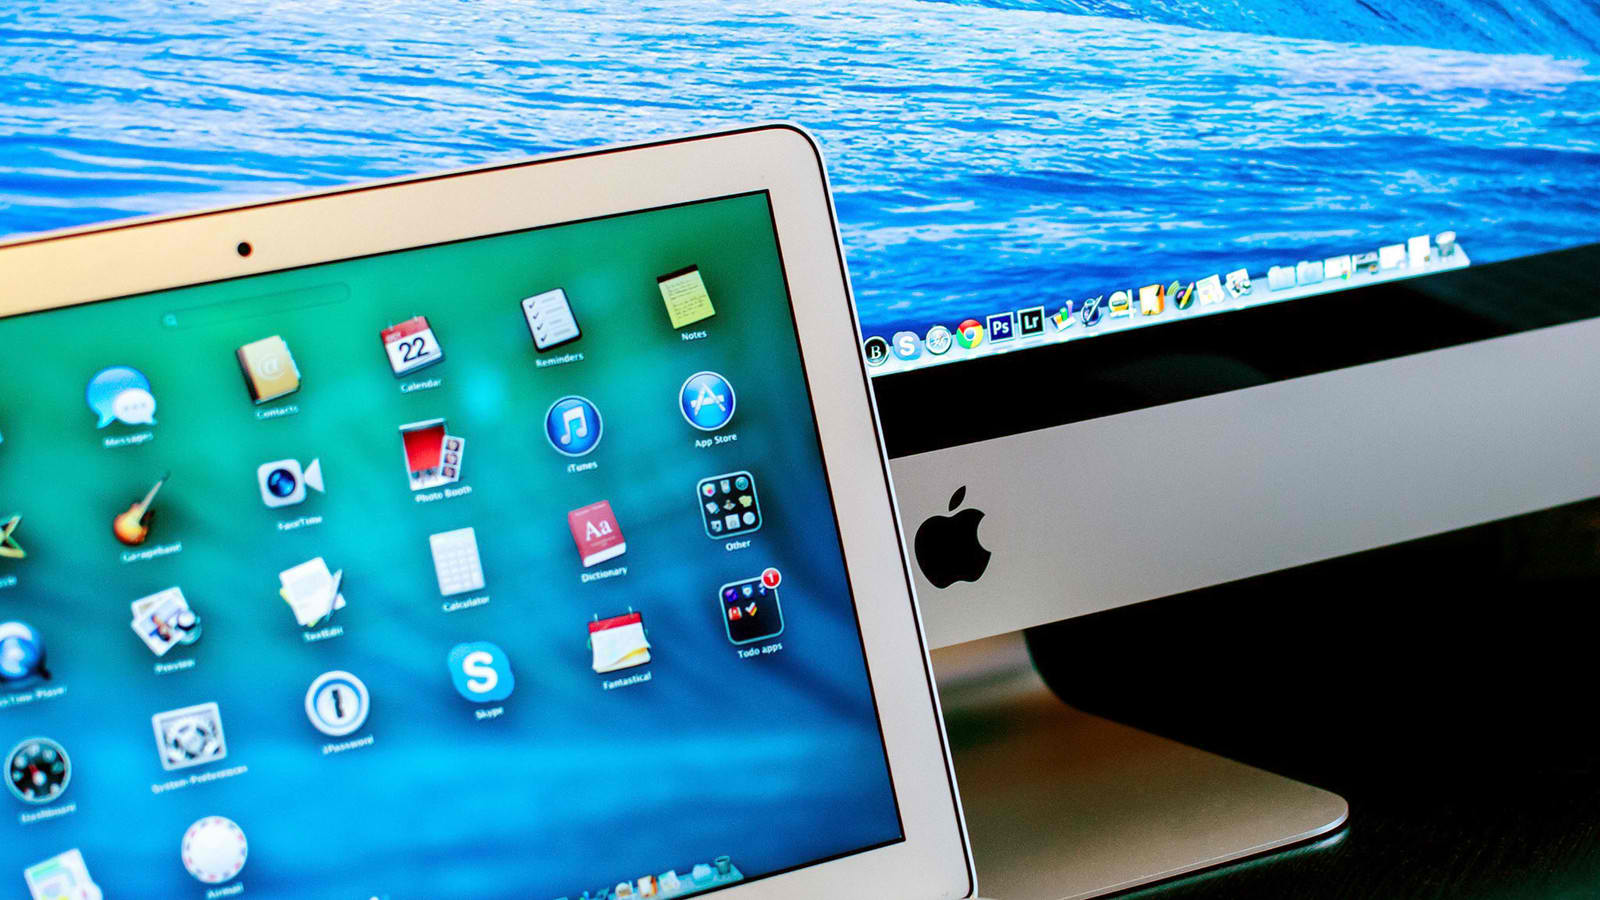 Mac+Tech macintosh training and support. Onsite Apple certified family, home, office, business.